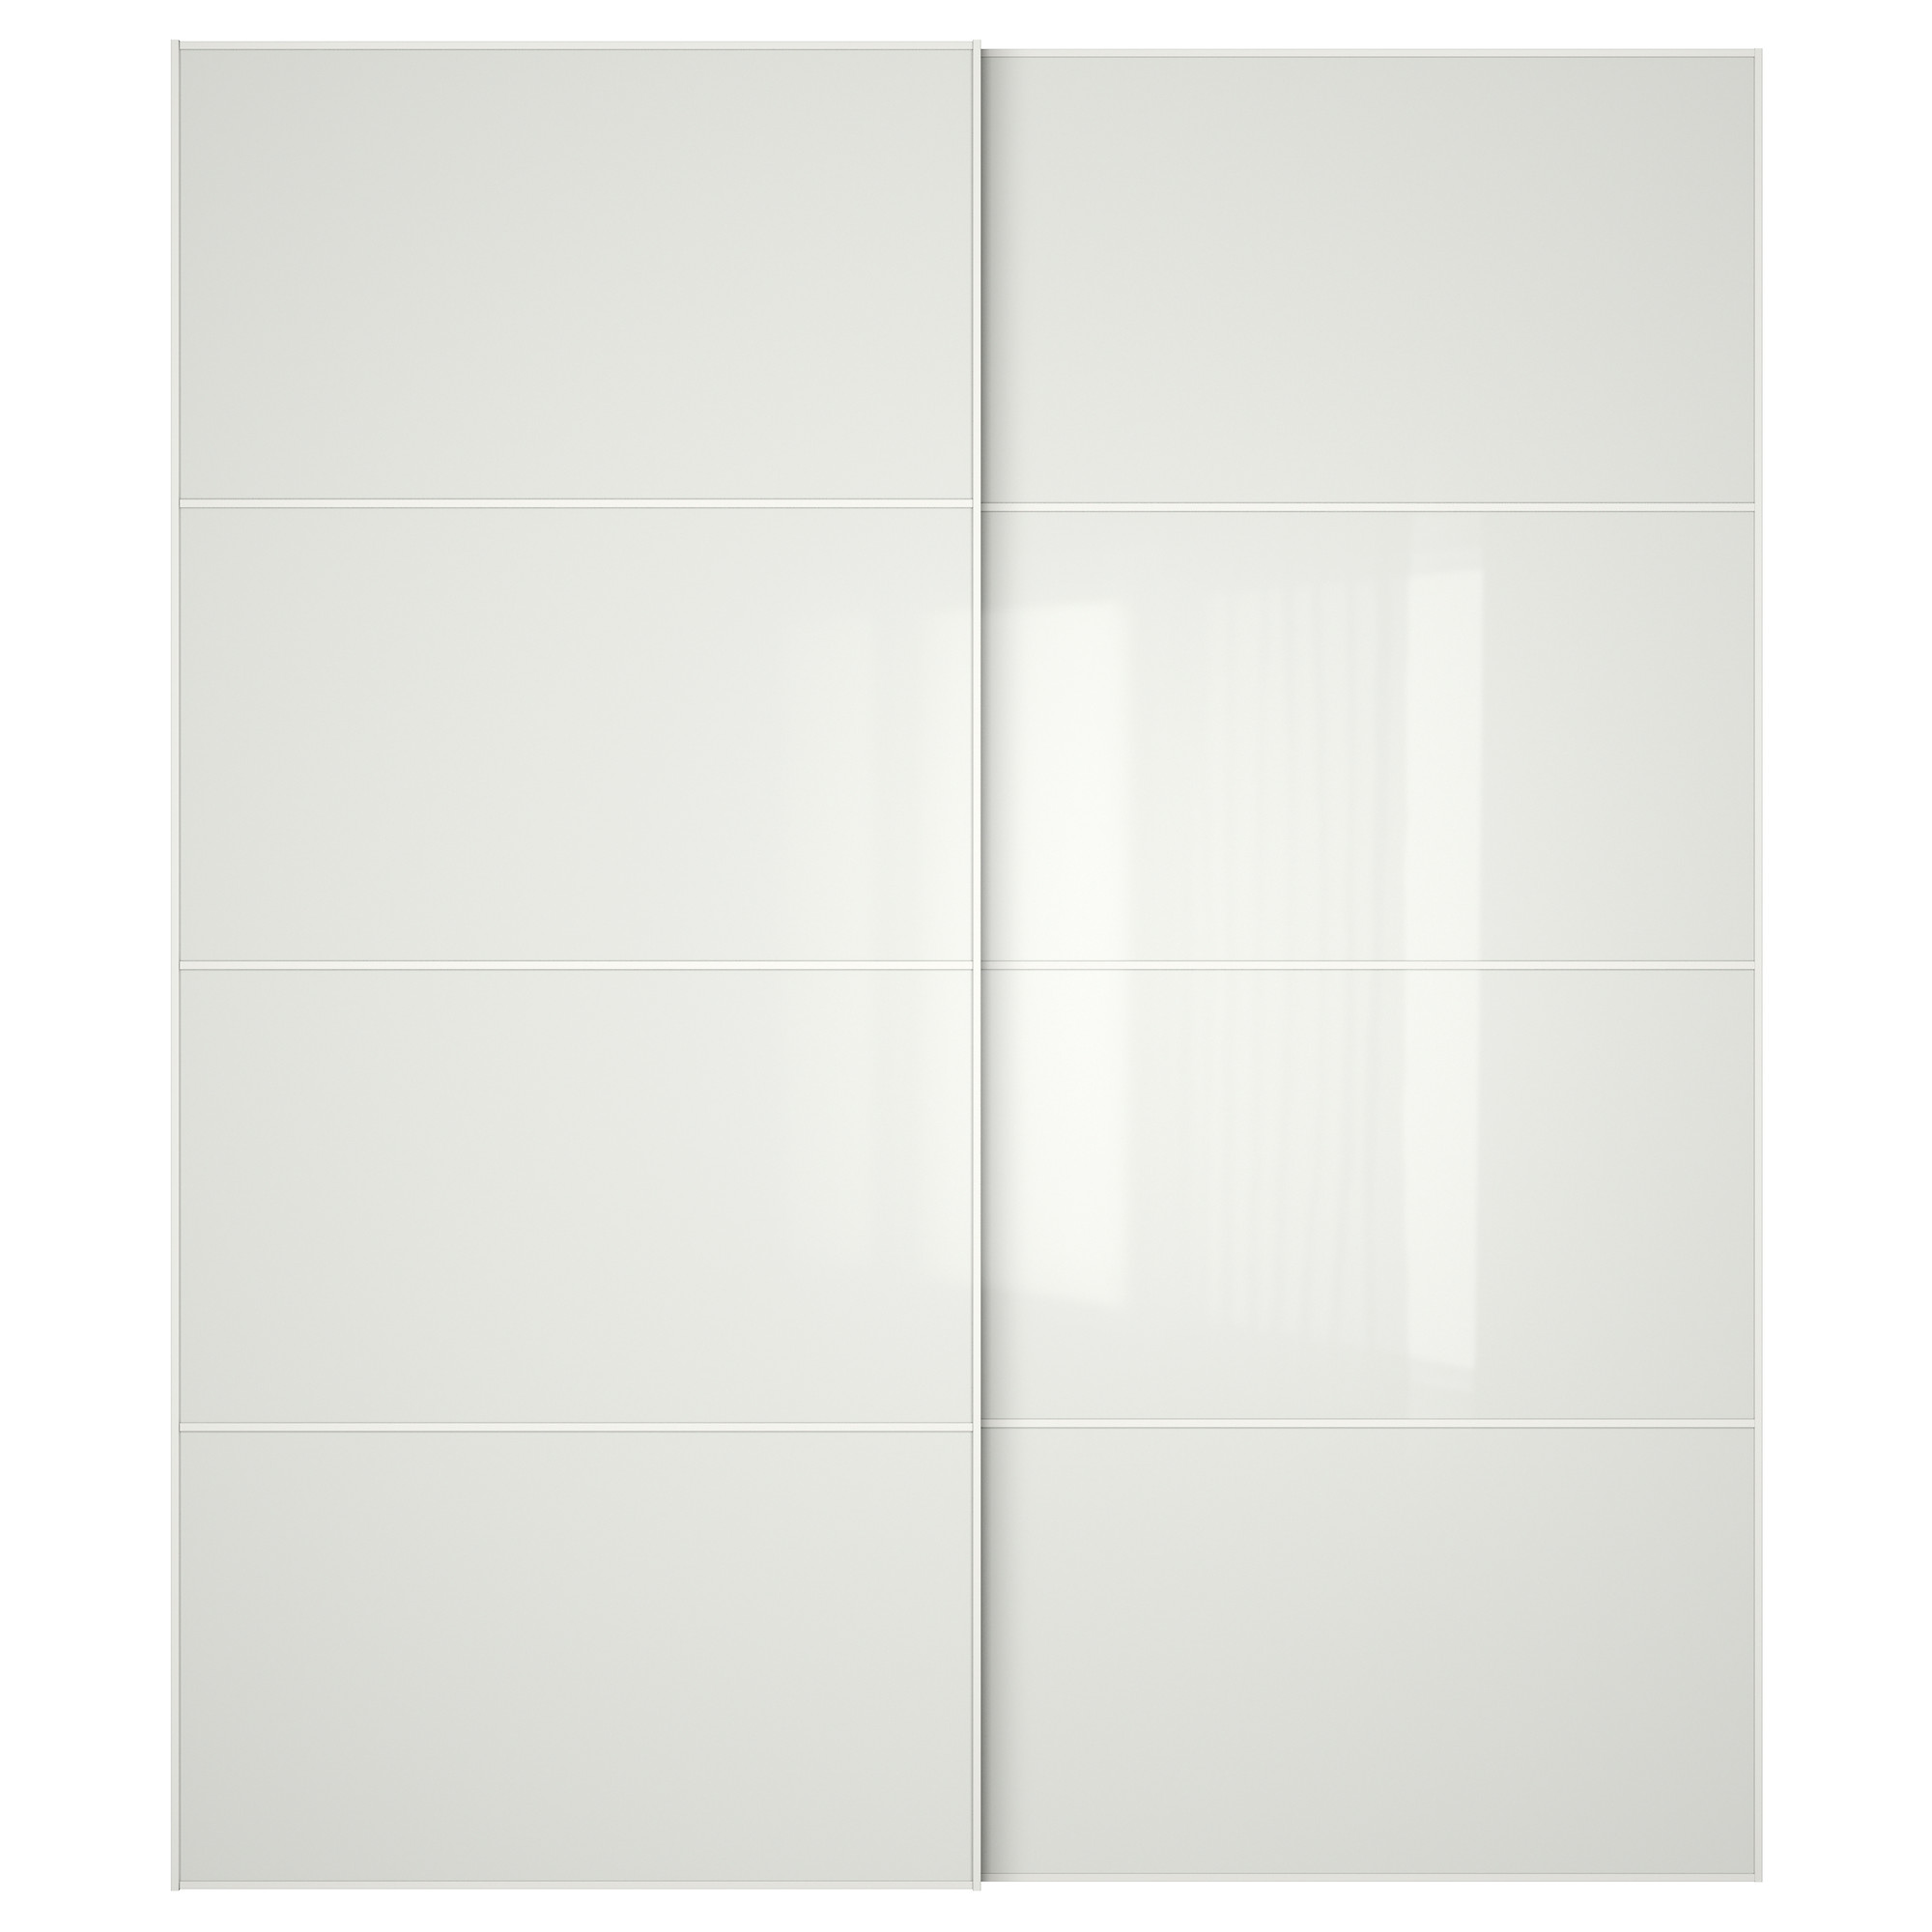 FÄRVIK Pair Of Sliding Doors   150x236 Cm, Soft Closing Damper   IKEA